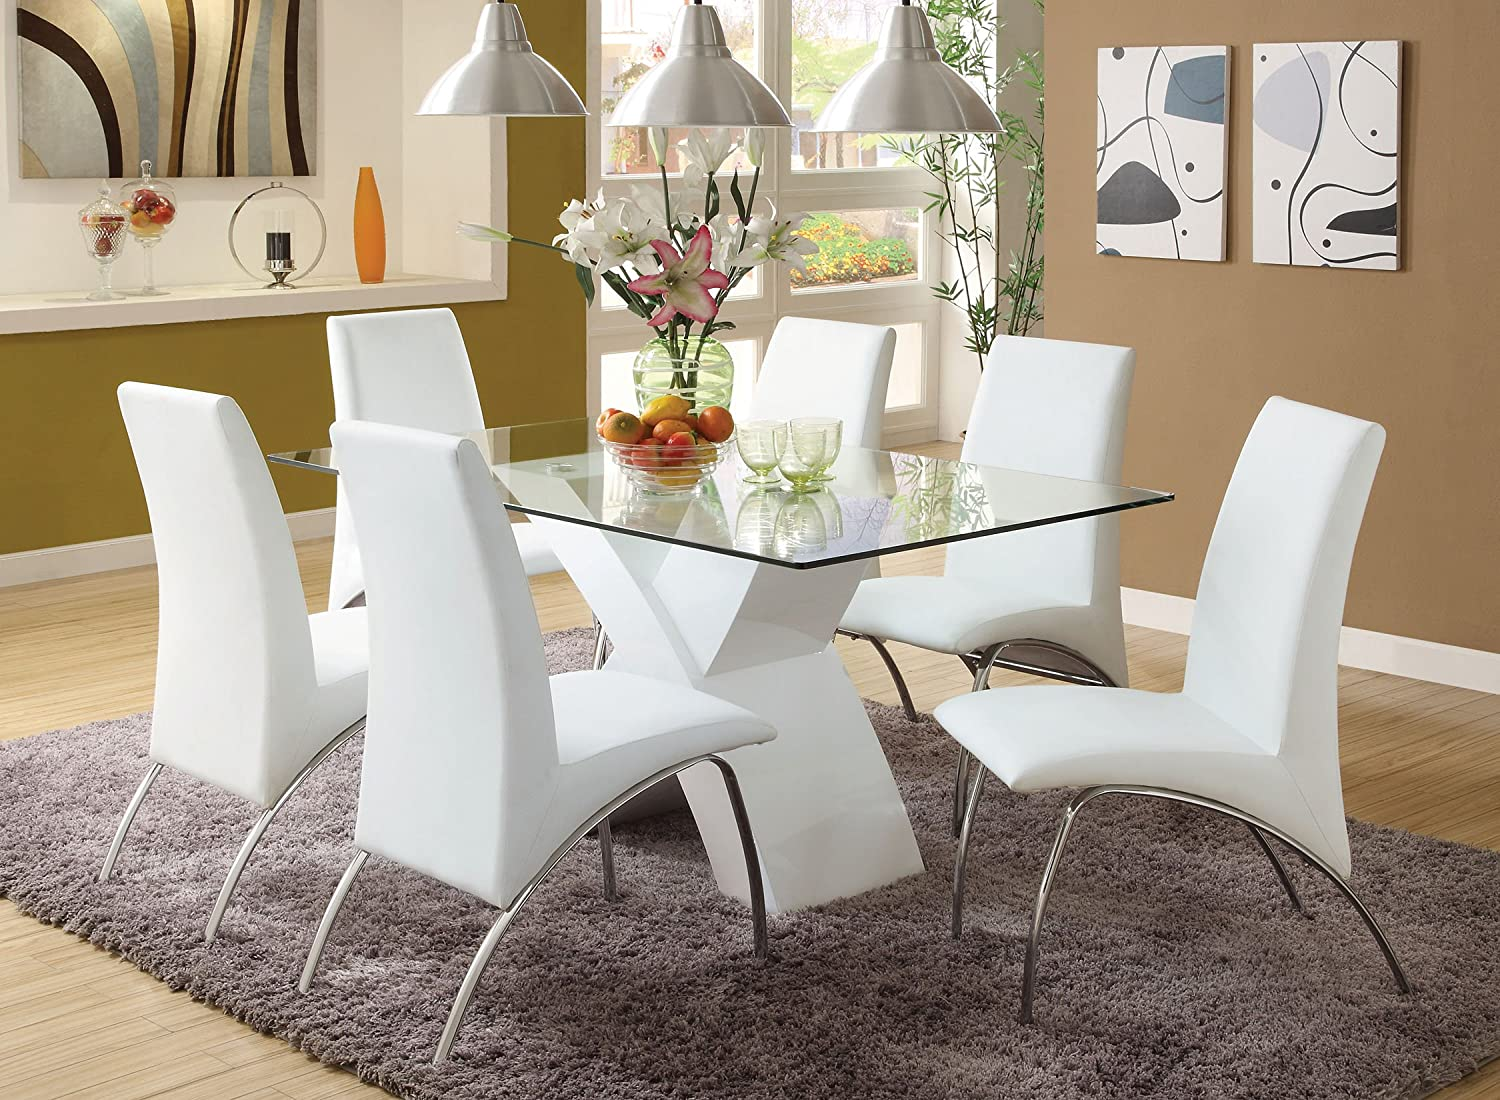 Beautiful Amazon.com: Furniture Of America Rivendale 7 Piece Modern Dining Table Set  With 12mm Tempered Glass Top, White Finish: Kitchen U0026 Dining